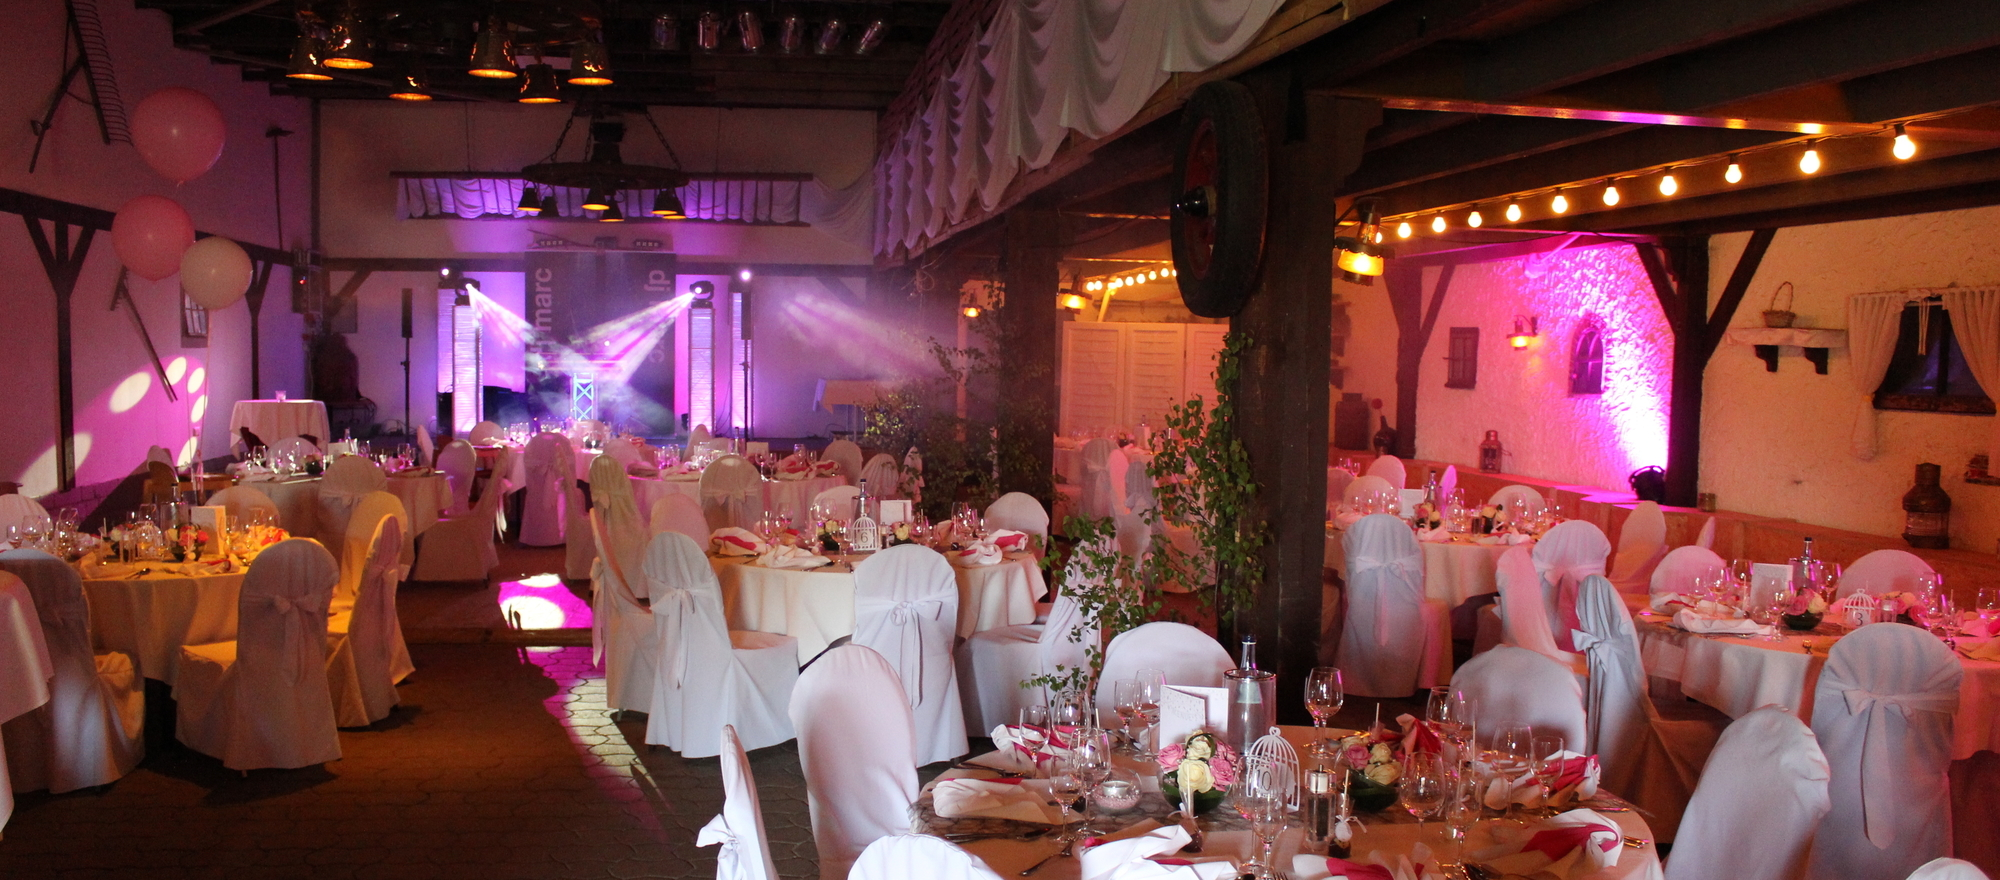 Party barn for celebrations in the Ringhotel Forellenhof in Walsrode, 4-stars Hotel in the Lueneburger Heide